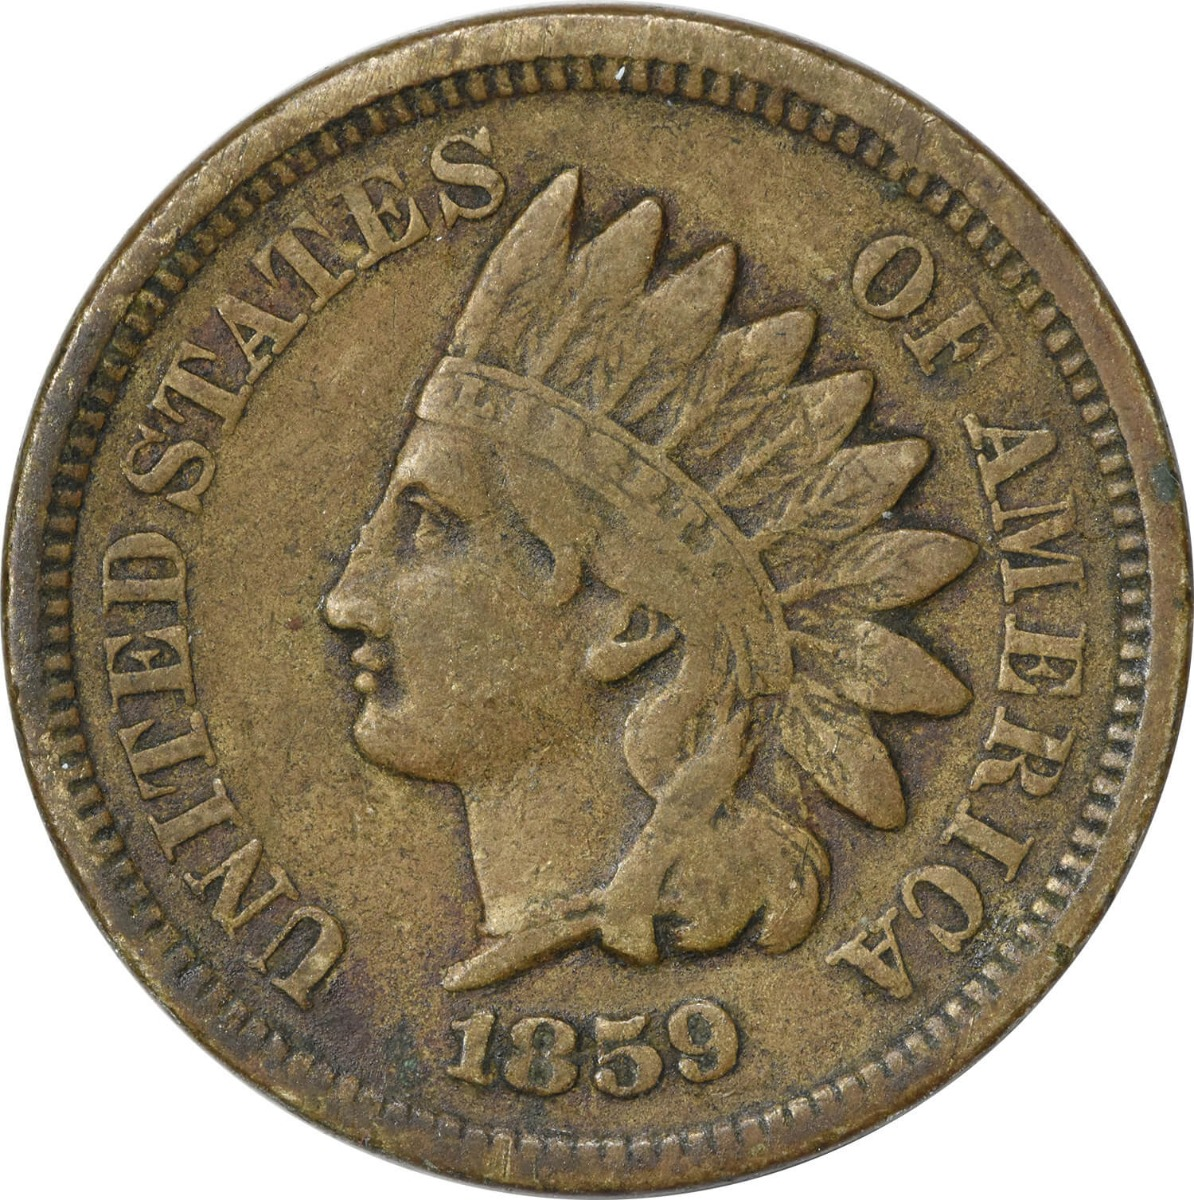 1859 Indian Cent F Uncertified